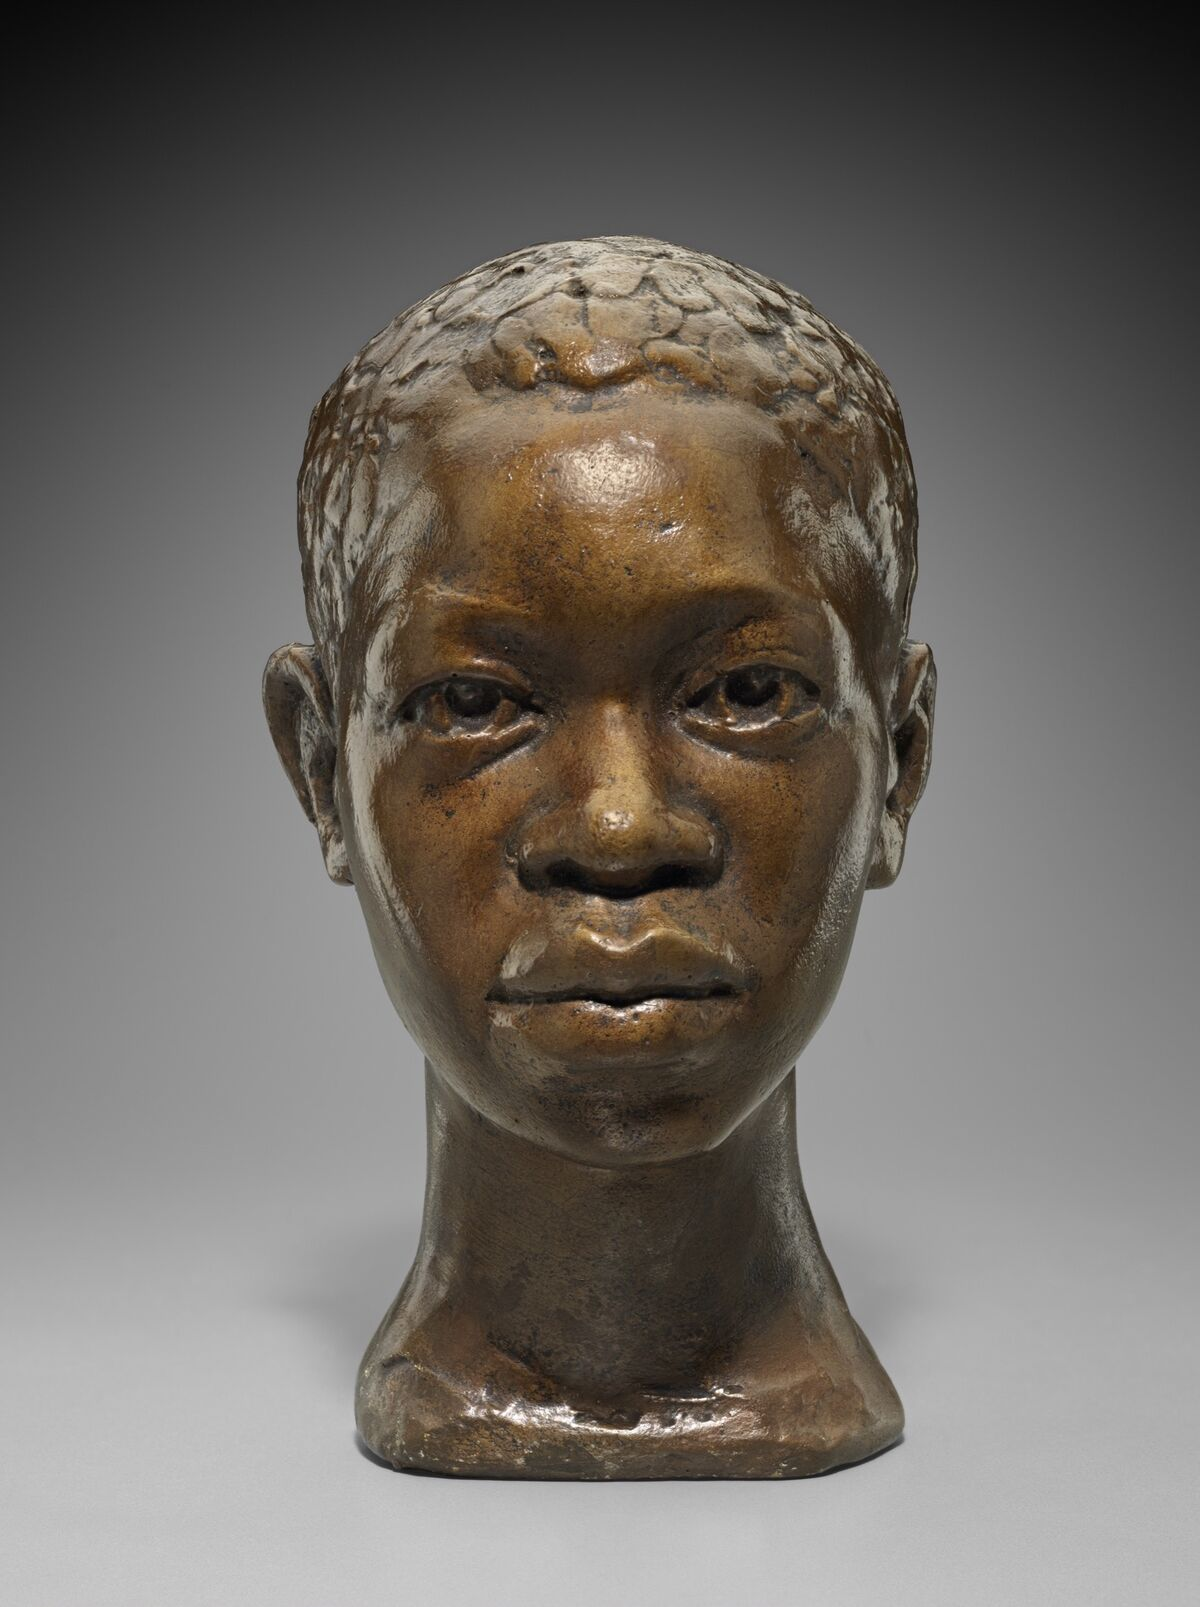 Ever Wonder Where That Iconic Bust Of >> Sculptor Augusta Savage S Towering Impact On The Harlem Renaissance